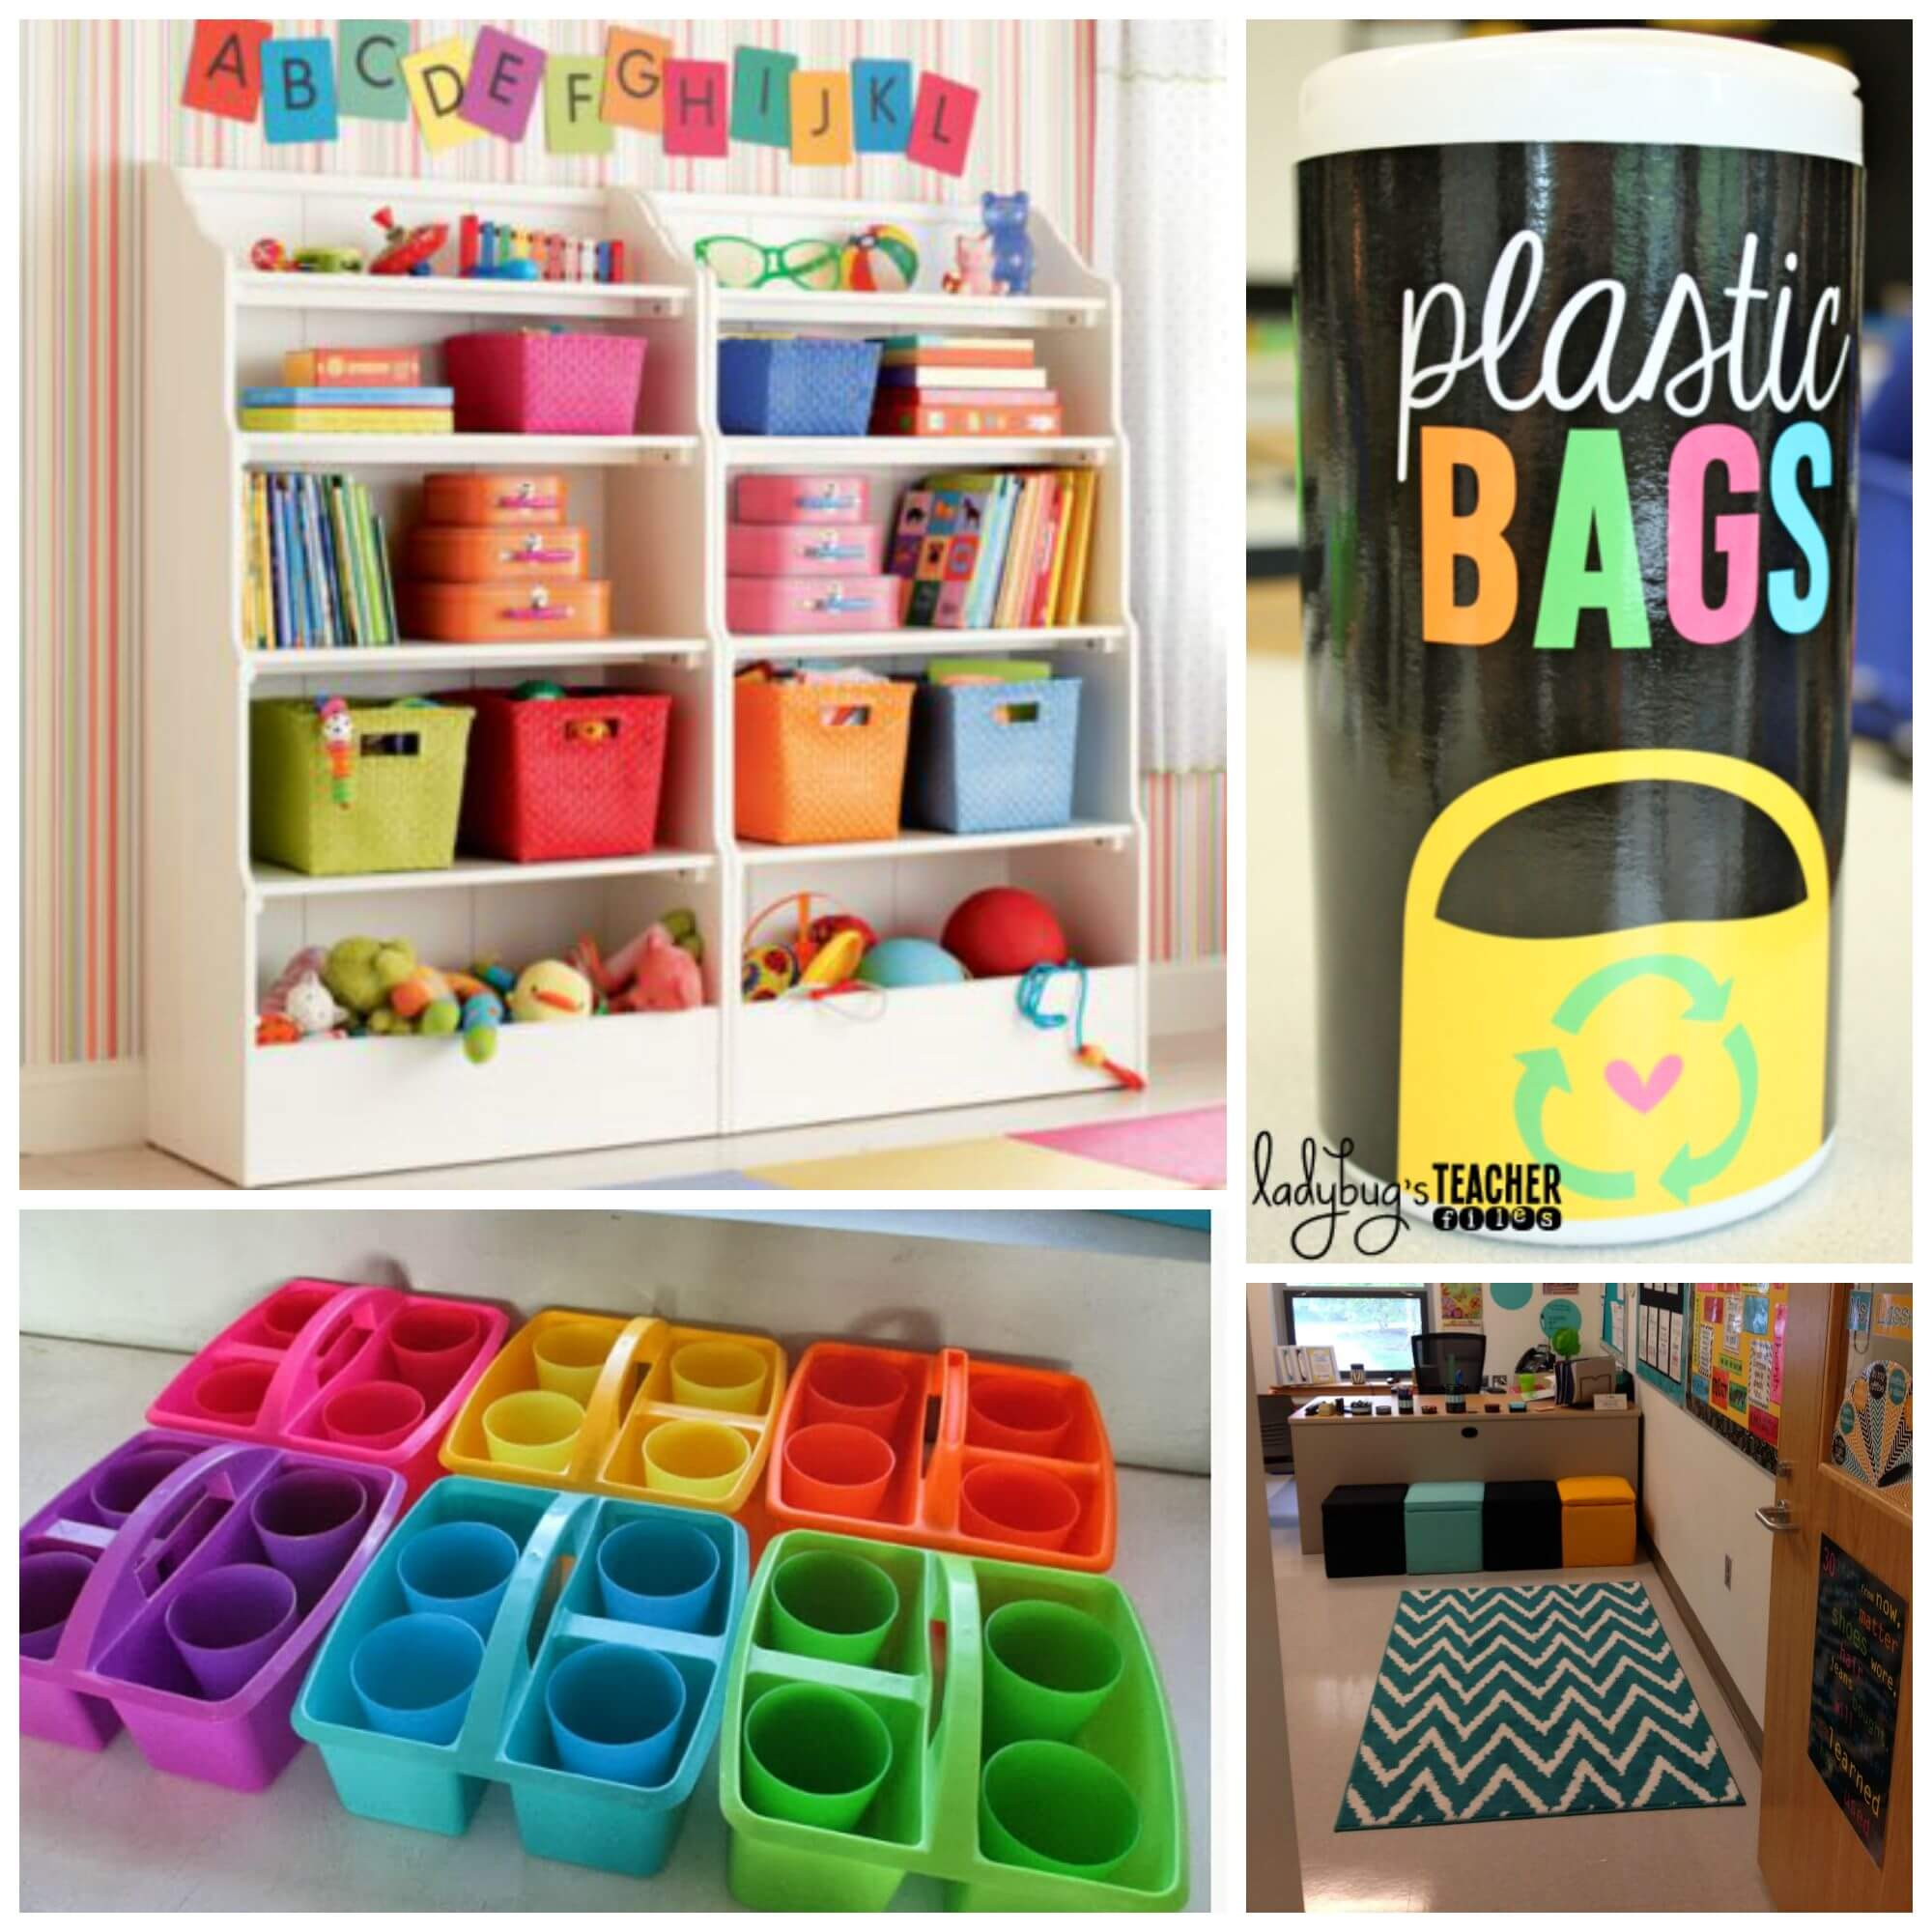 Creative Classroom Decoration For Kindergarten : Inspiring classroom decoration ideas playdough to plato